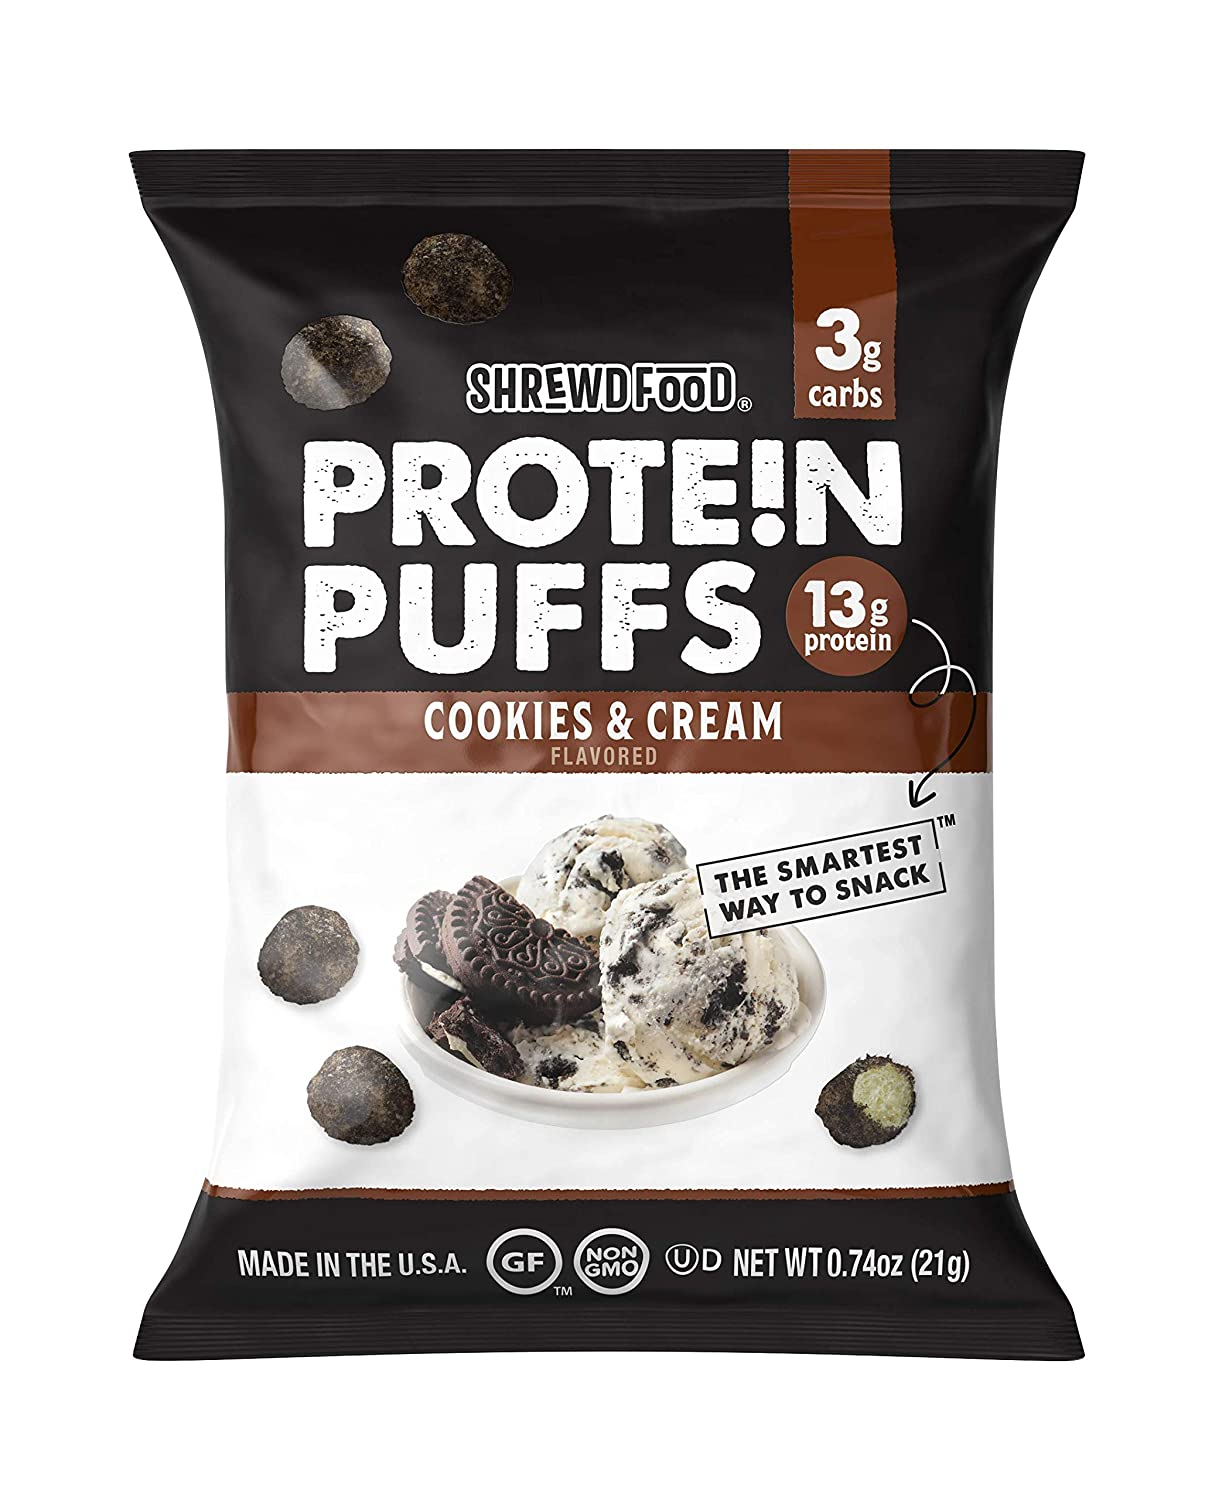 Shrewd Food Protein Puffs, Low Carb Cereal Snack, High Protein Crunch, Sweet And Crispy Protein Snack, 14g Protein / Pack, 3g Carbs, Soy Free, Peanut Free, Gluten Free, Cookies And Cream - 8 Pack